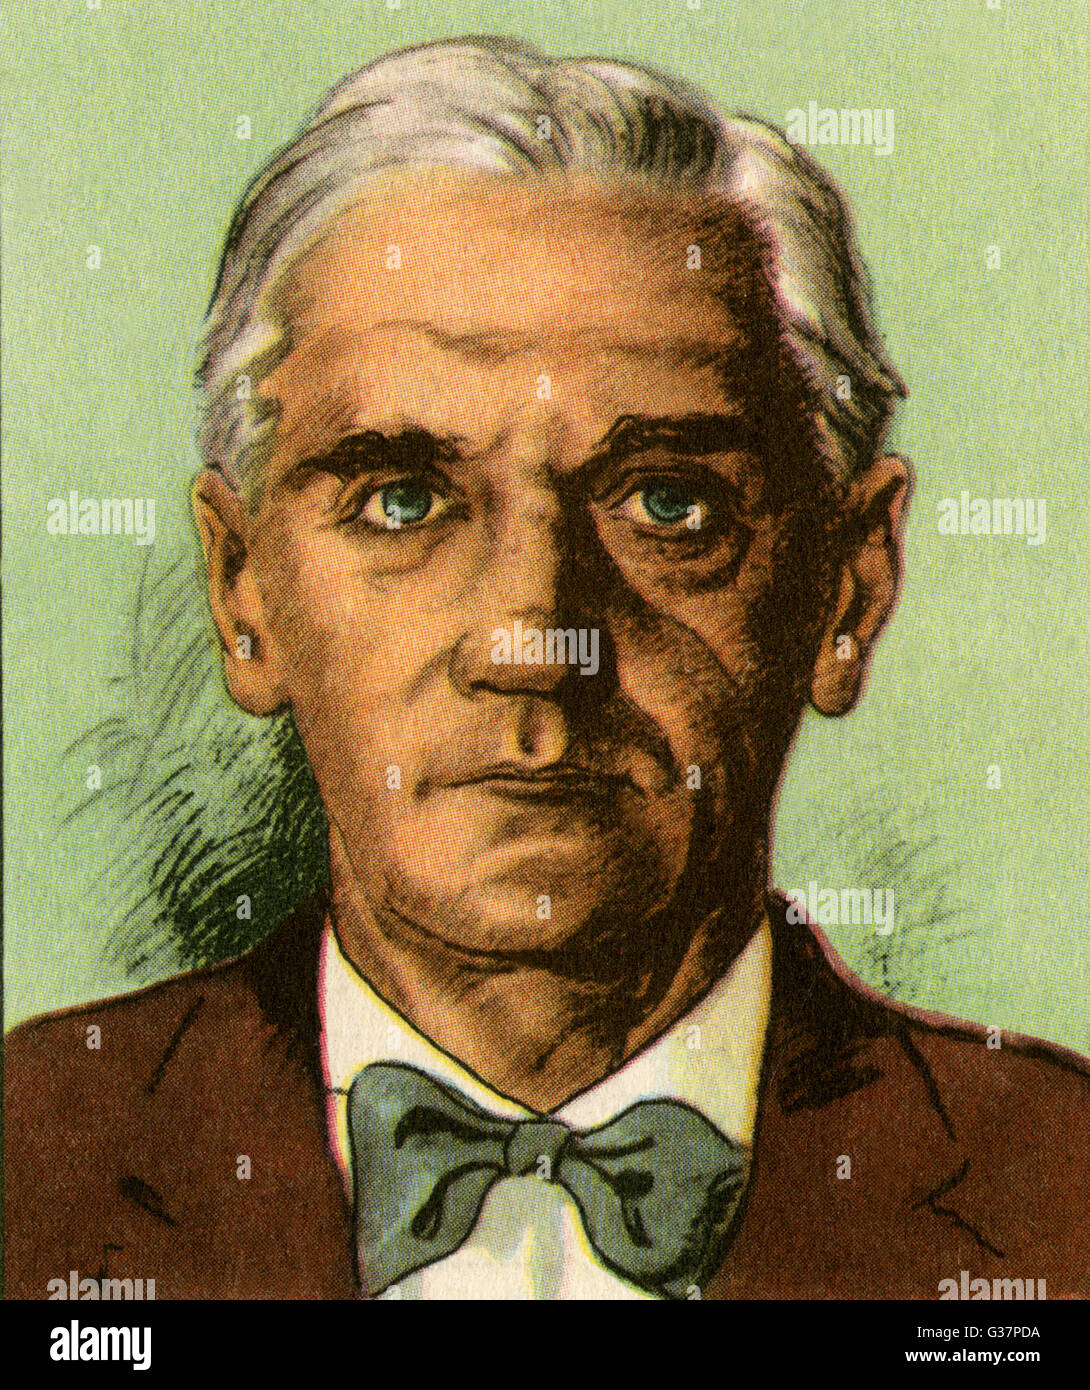 SIR ALEXANDER FLEMING -  British medical scientist and  bacteriologist.       Date: 1881 - 1955 - Stock Image